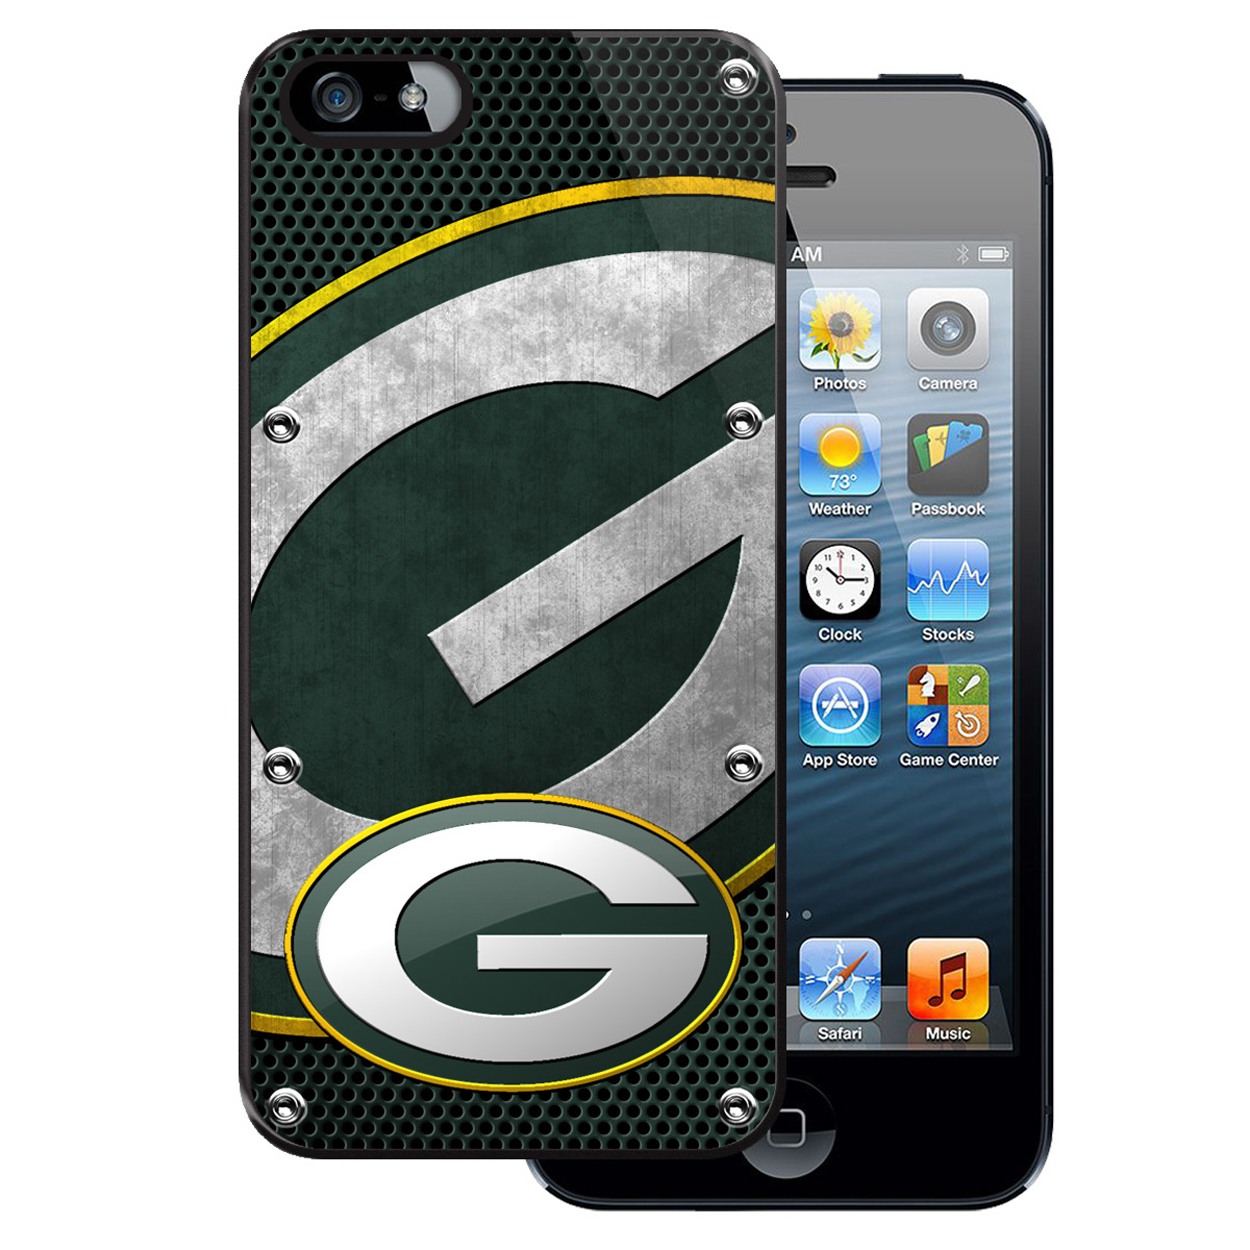 NFL Iphone 5 Case - Green Bay Packers